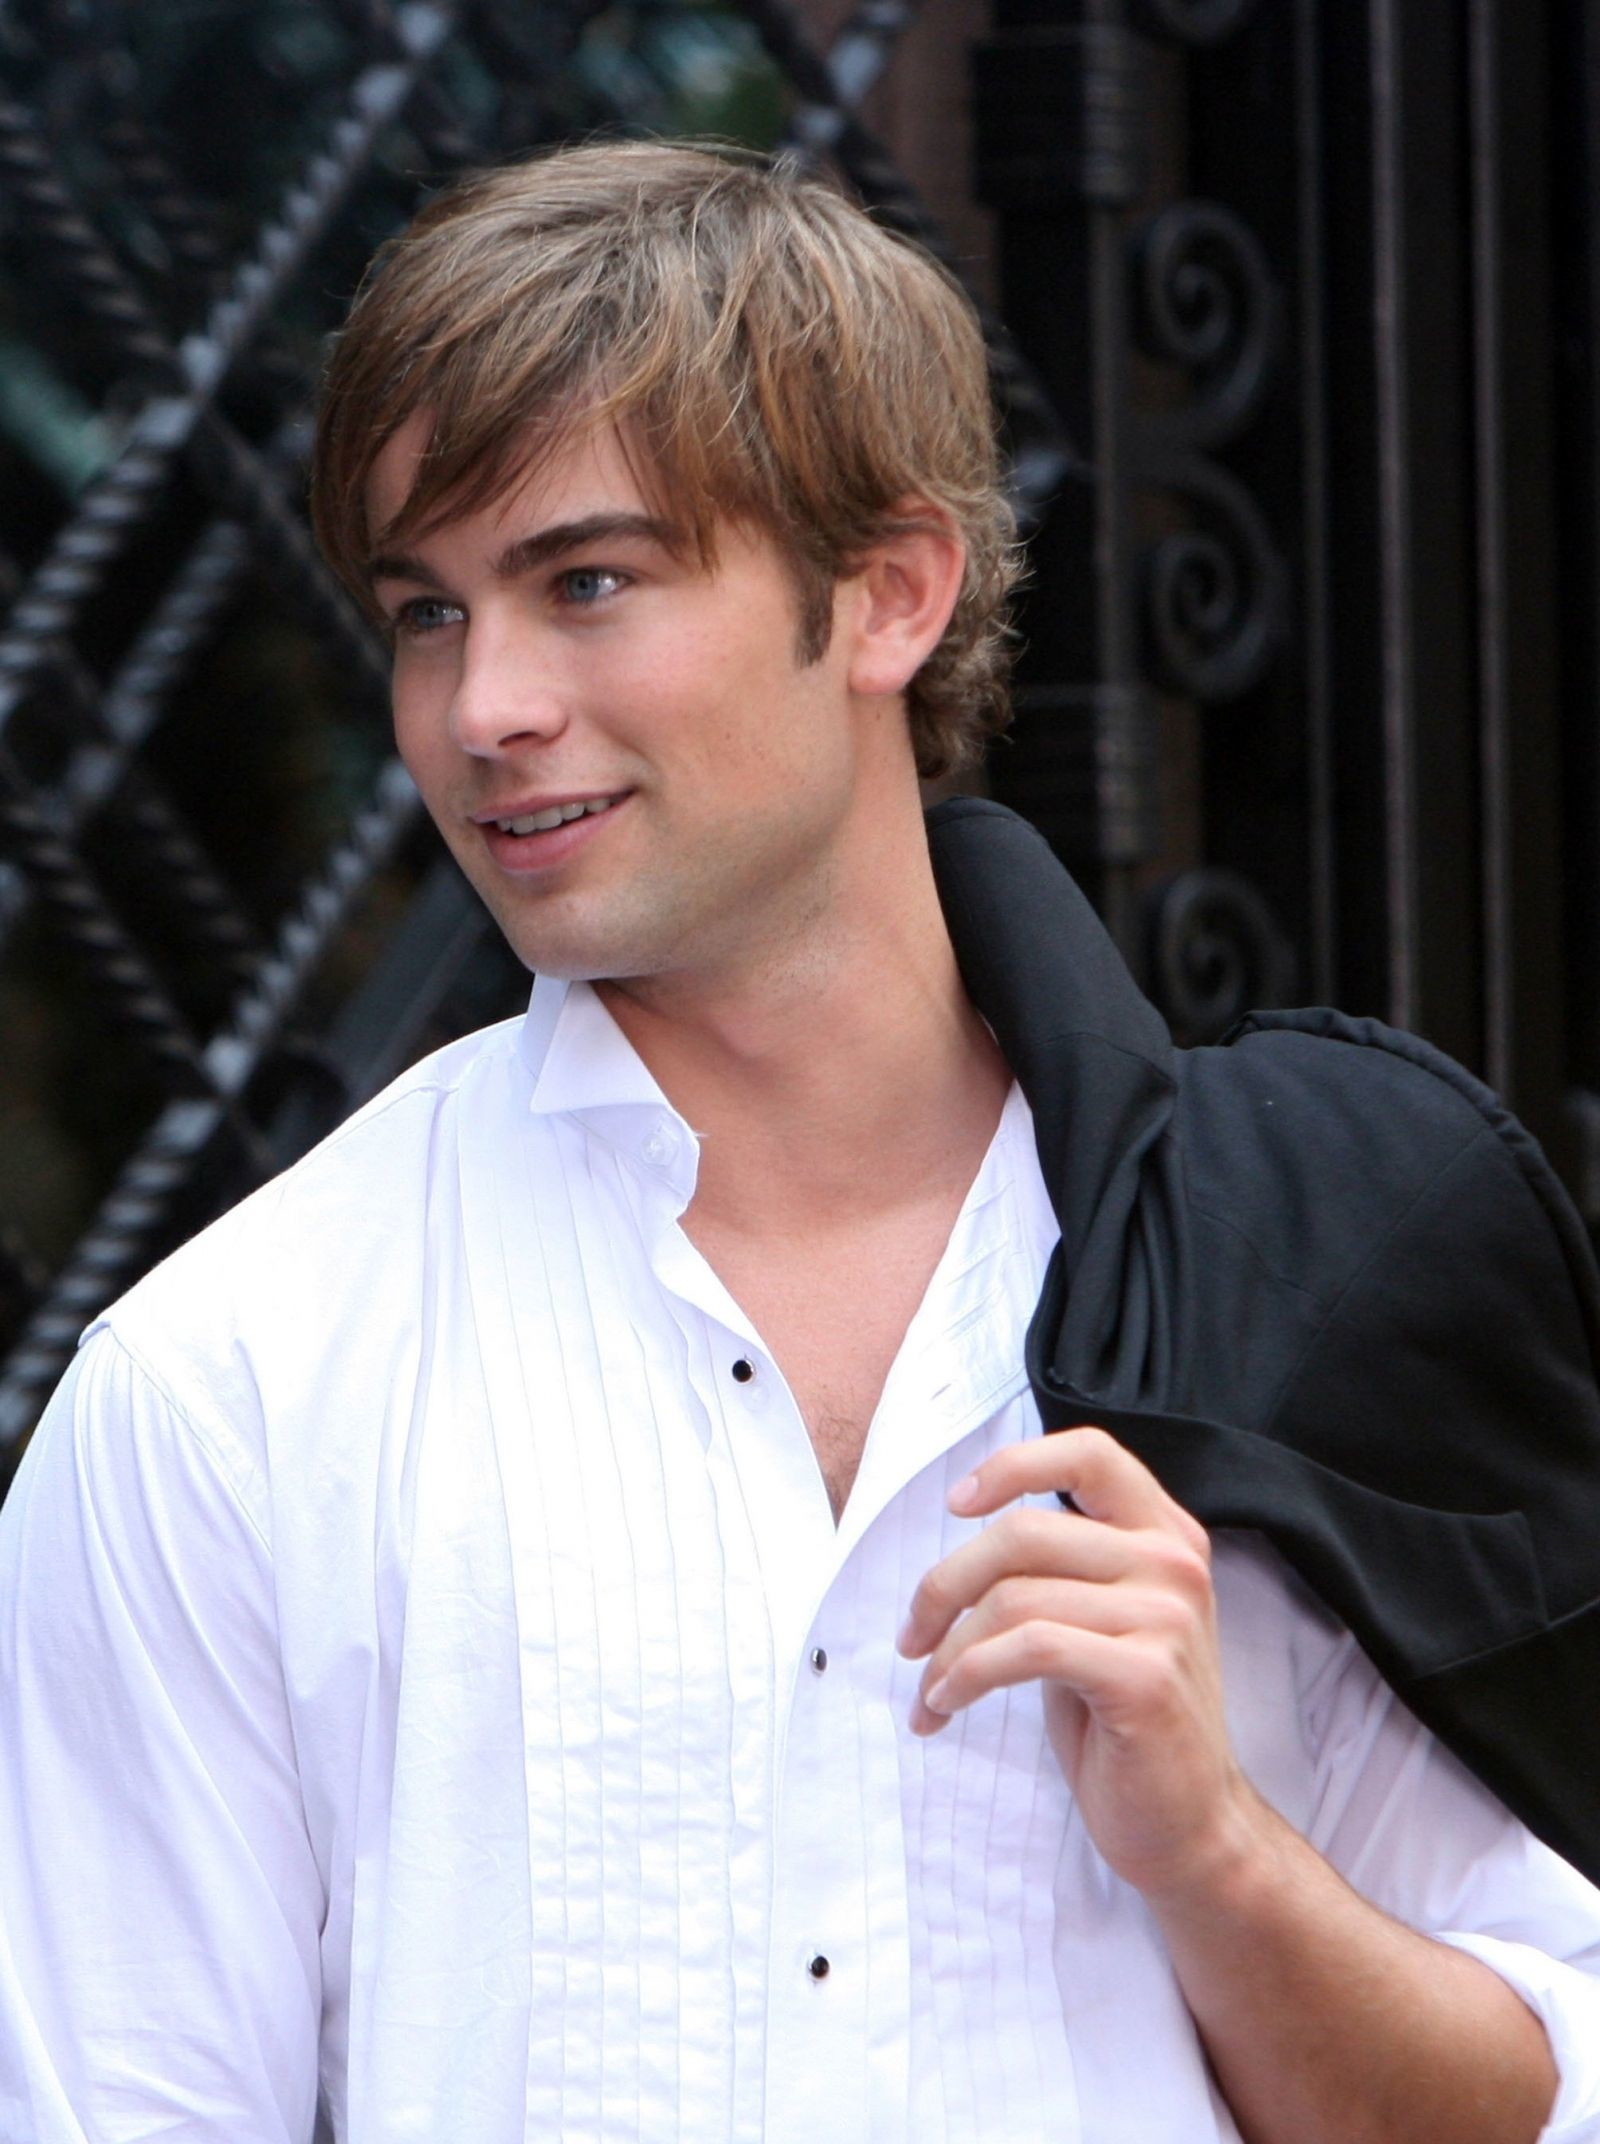 Res: 1600x2144, Nate (Chace Crawford) was the epitome of a well-groomed man.